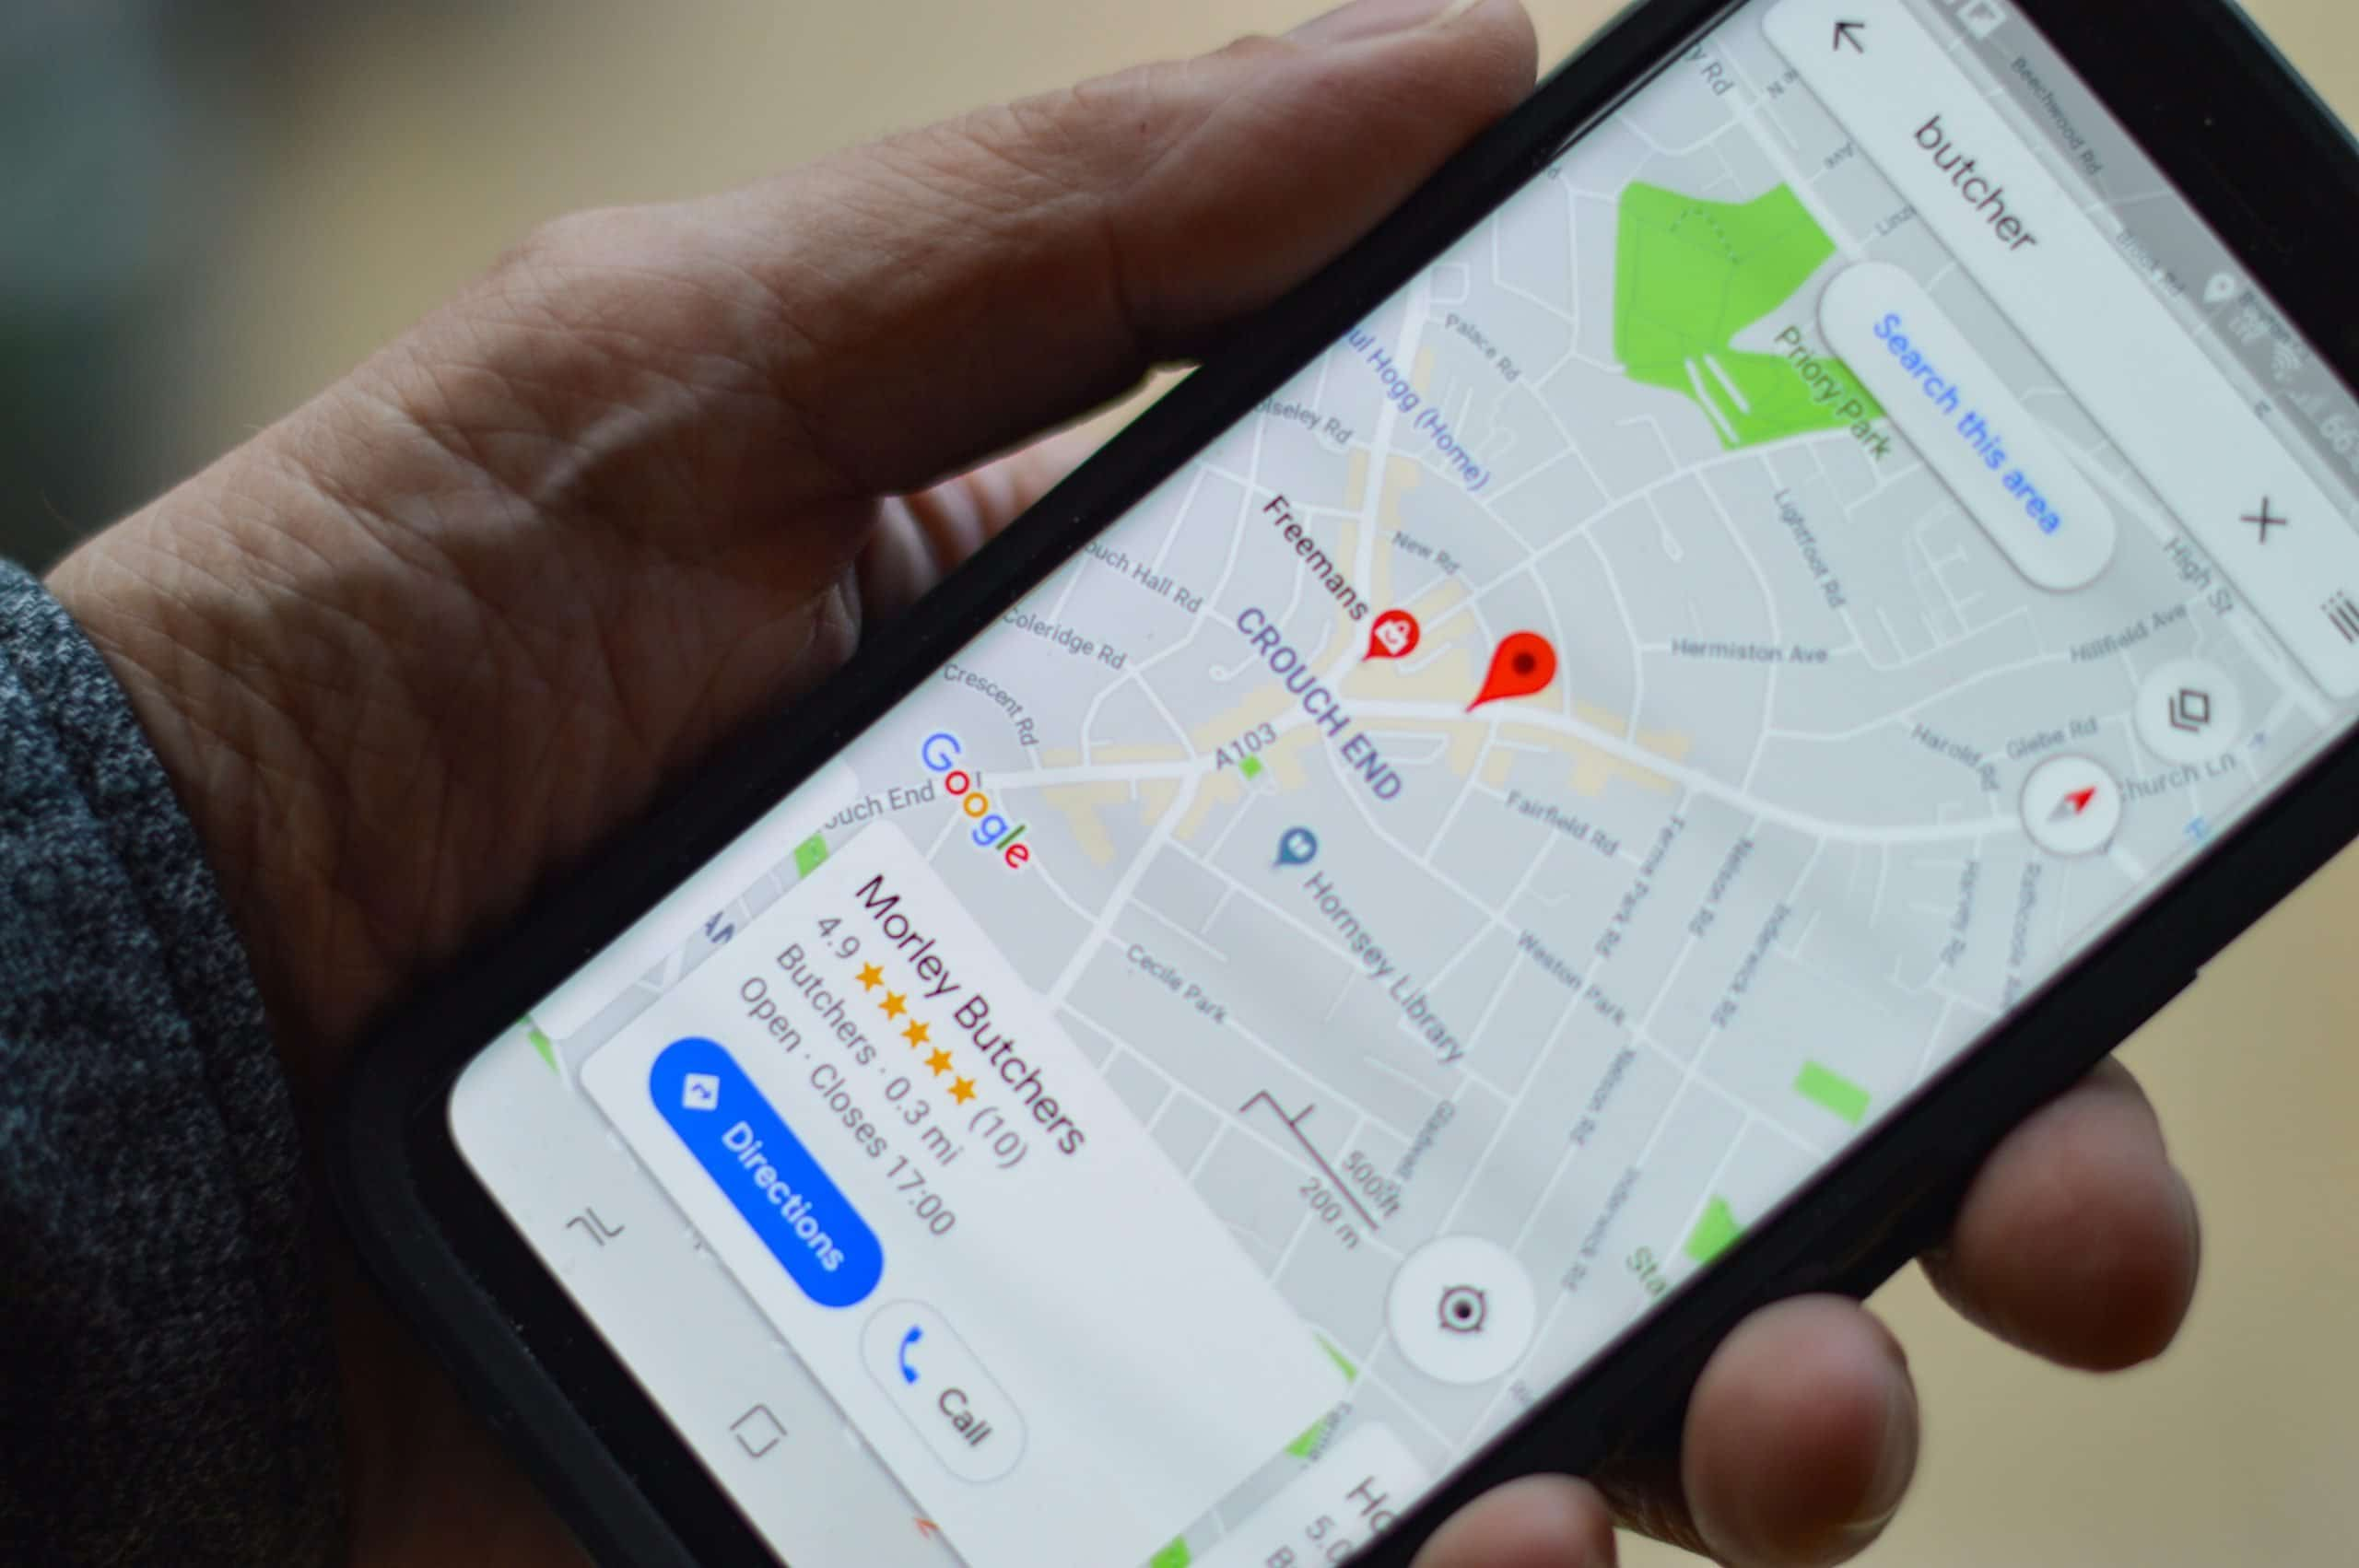 Phone with Google Maps open